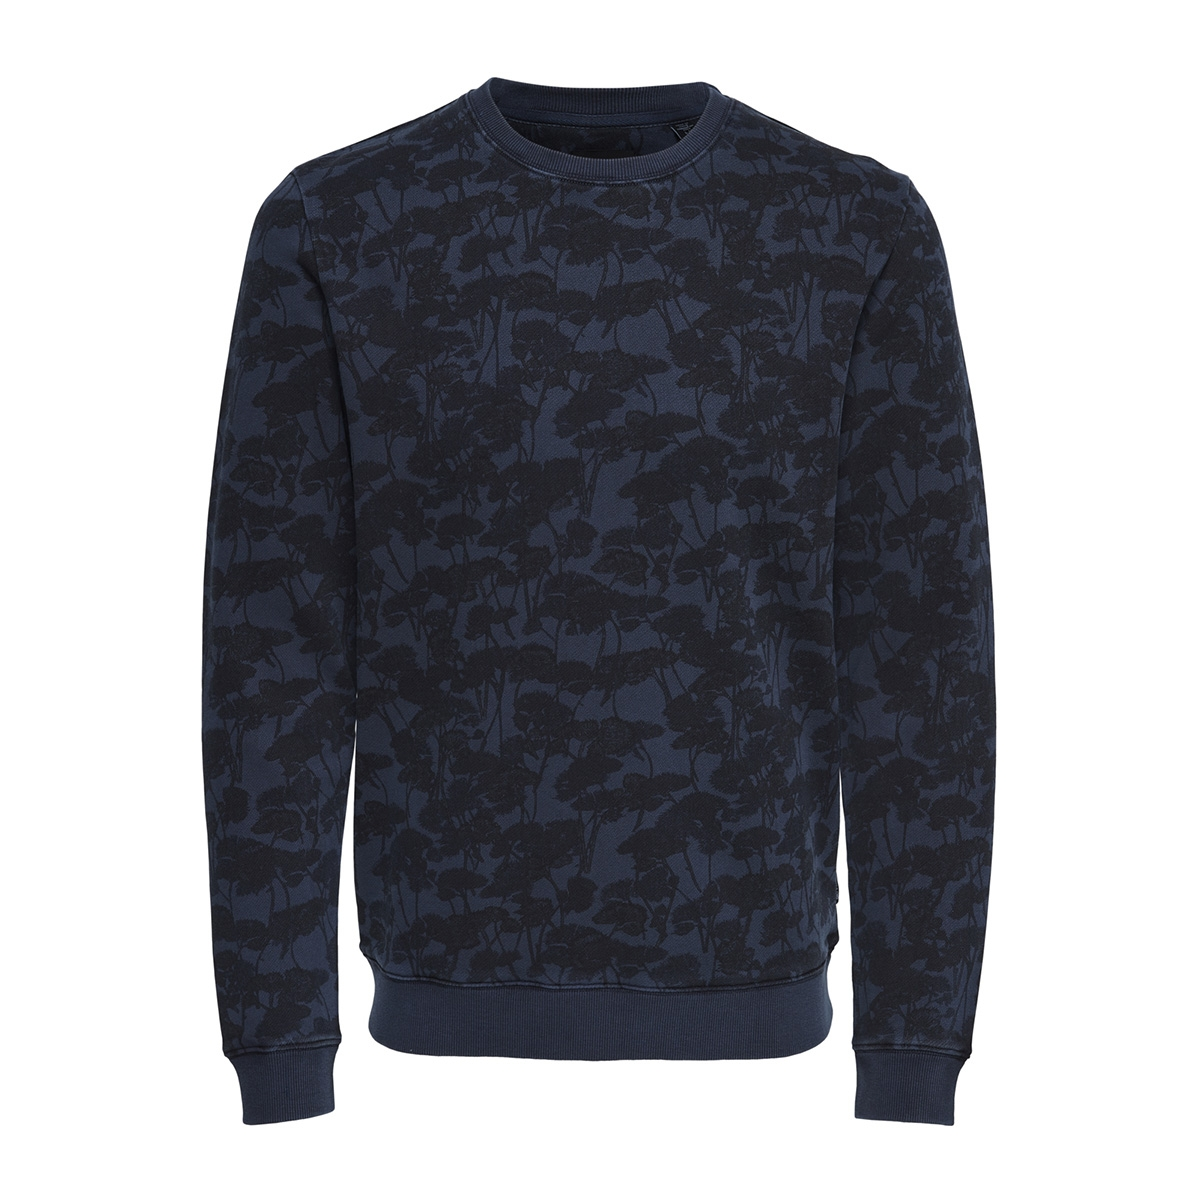 onsthor aop washed crew sweat 22012549 only & sons sweater dress blues